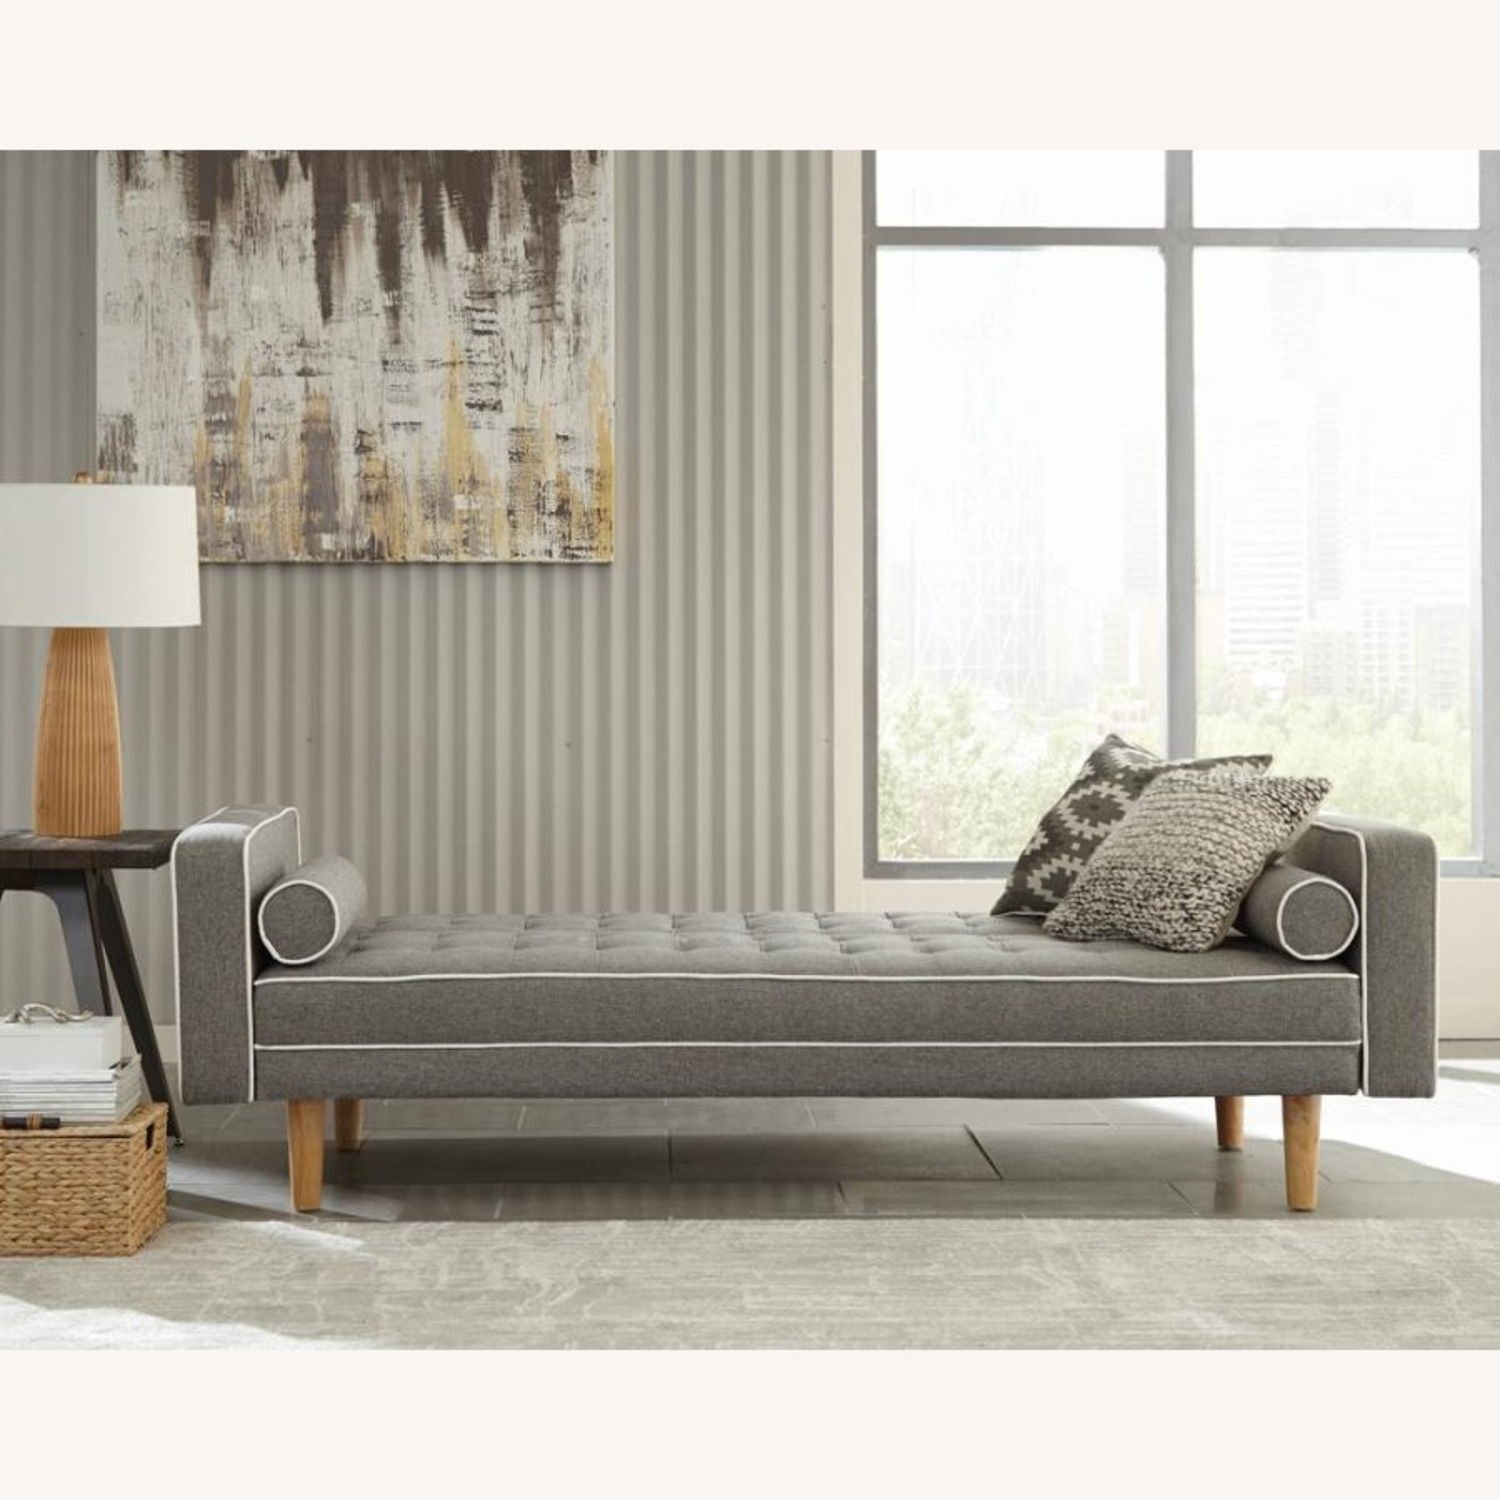 Sofa Bed In Grey Fabric W/ Natural Wood Legs - image-5